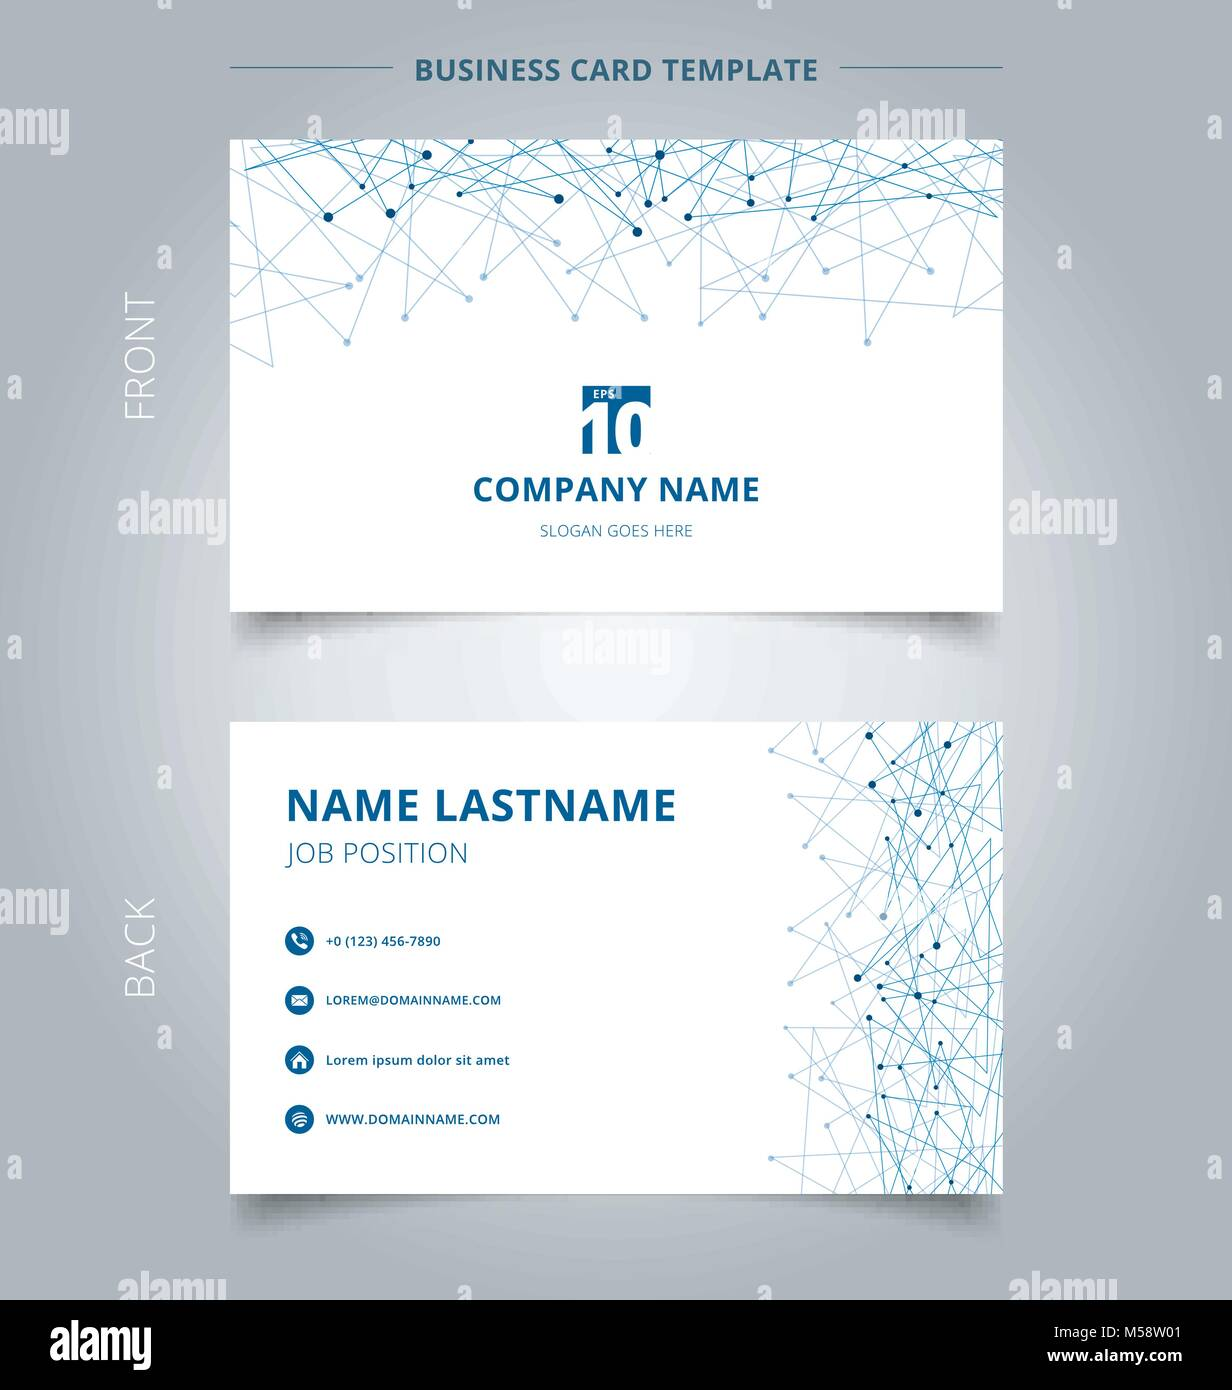 Creative Business Card And Name Template Technology Blue Mesh With Dots On White Background Techno Design Of Future Digital Data Abstract Conc